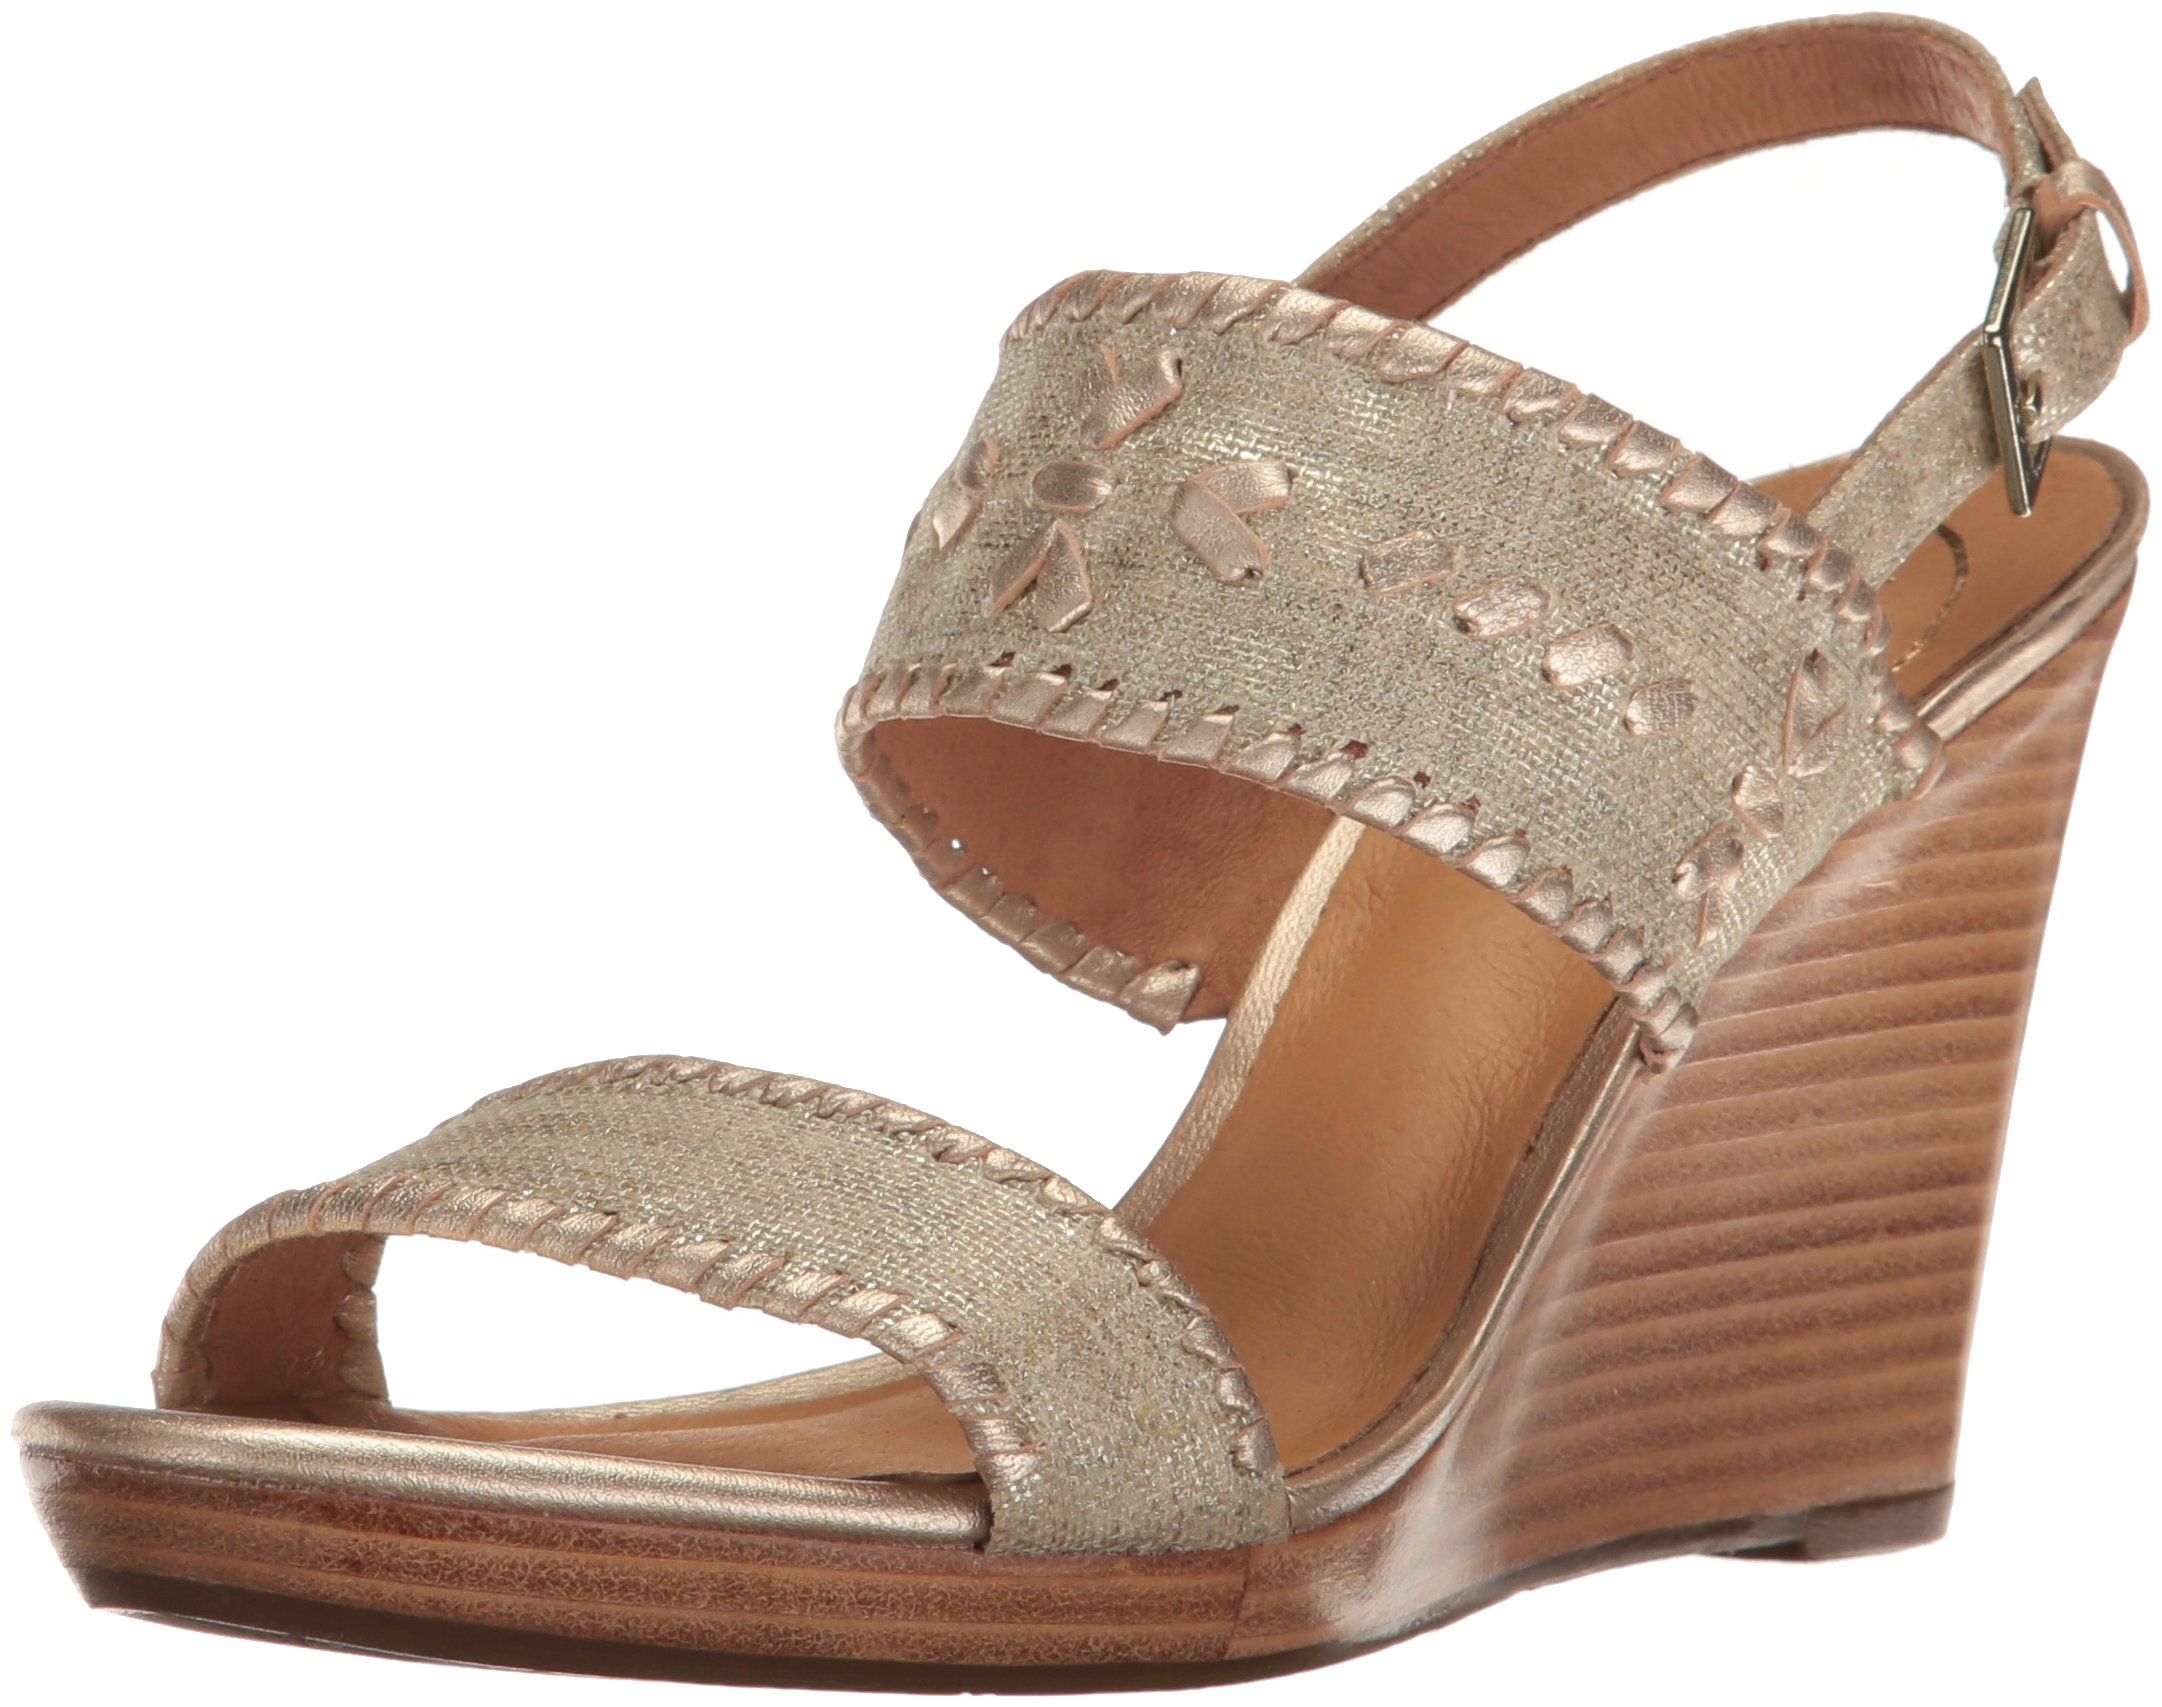 Jack Rogers Women's Vanessa Stacked Wedge Sandal, Platinum, 9.5 M US